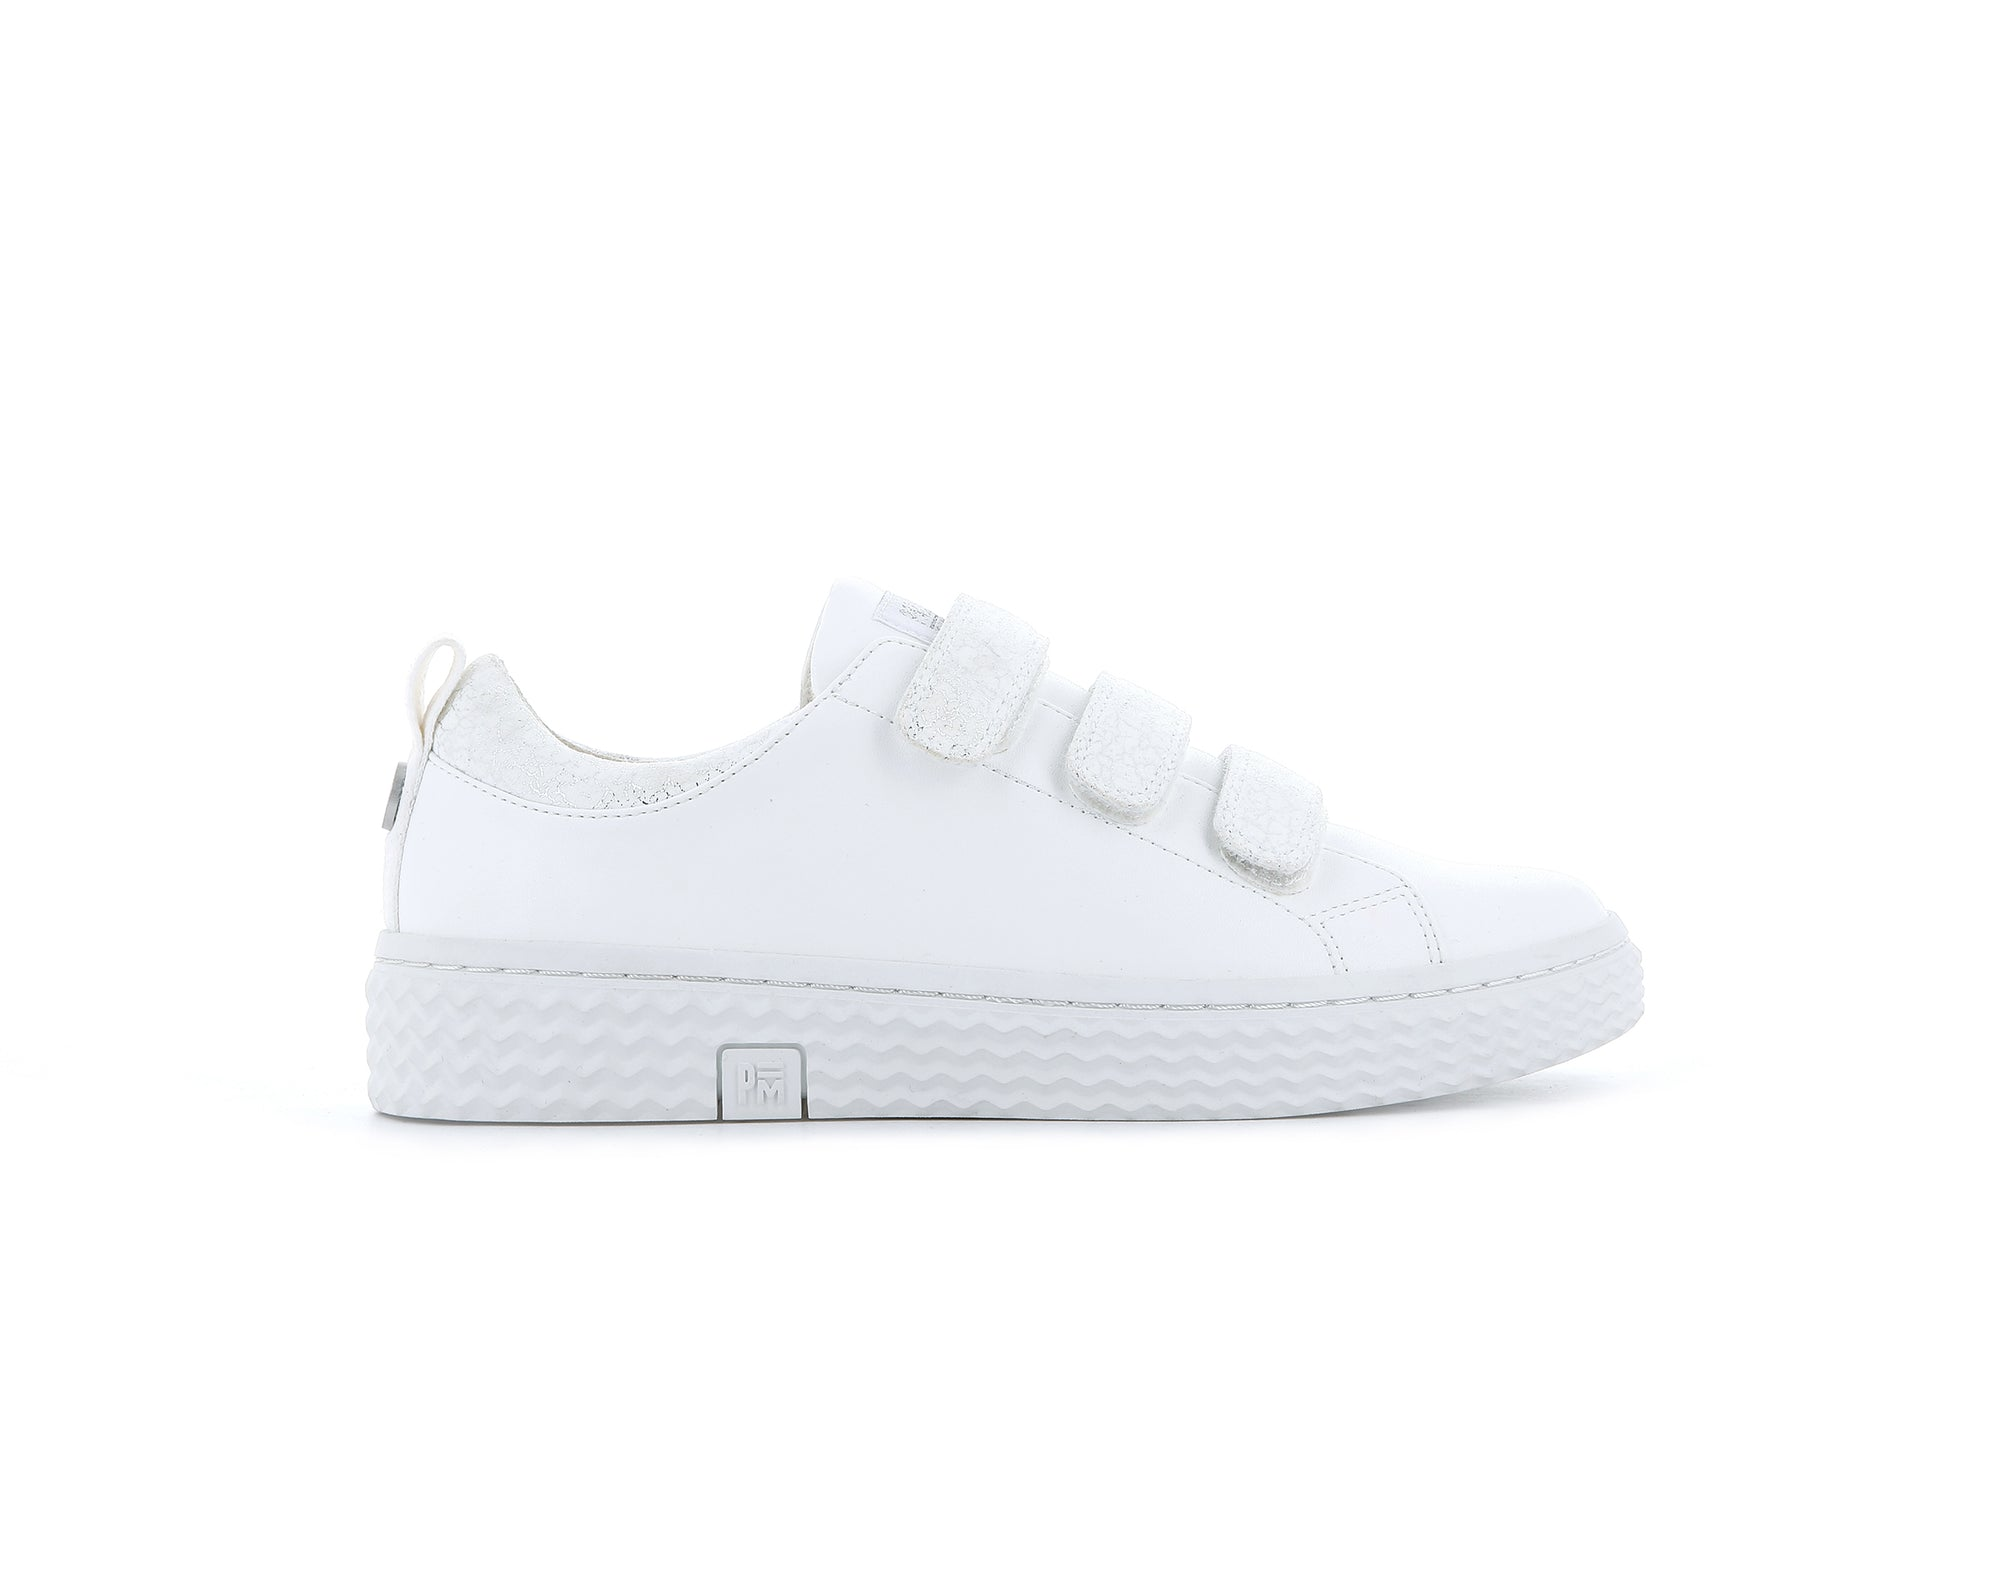 77022_420 | Baskets femme TEMPO 08 SYN | WHITE